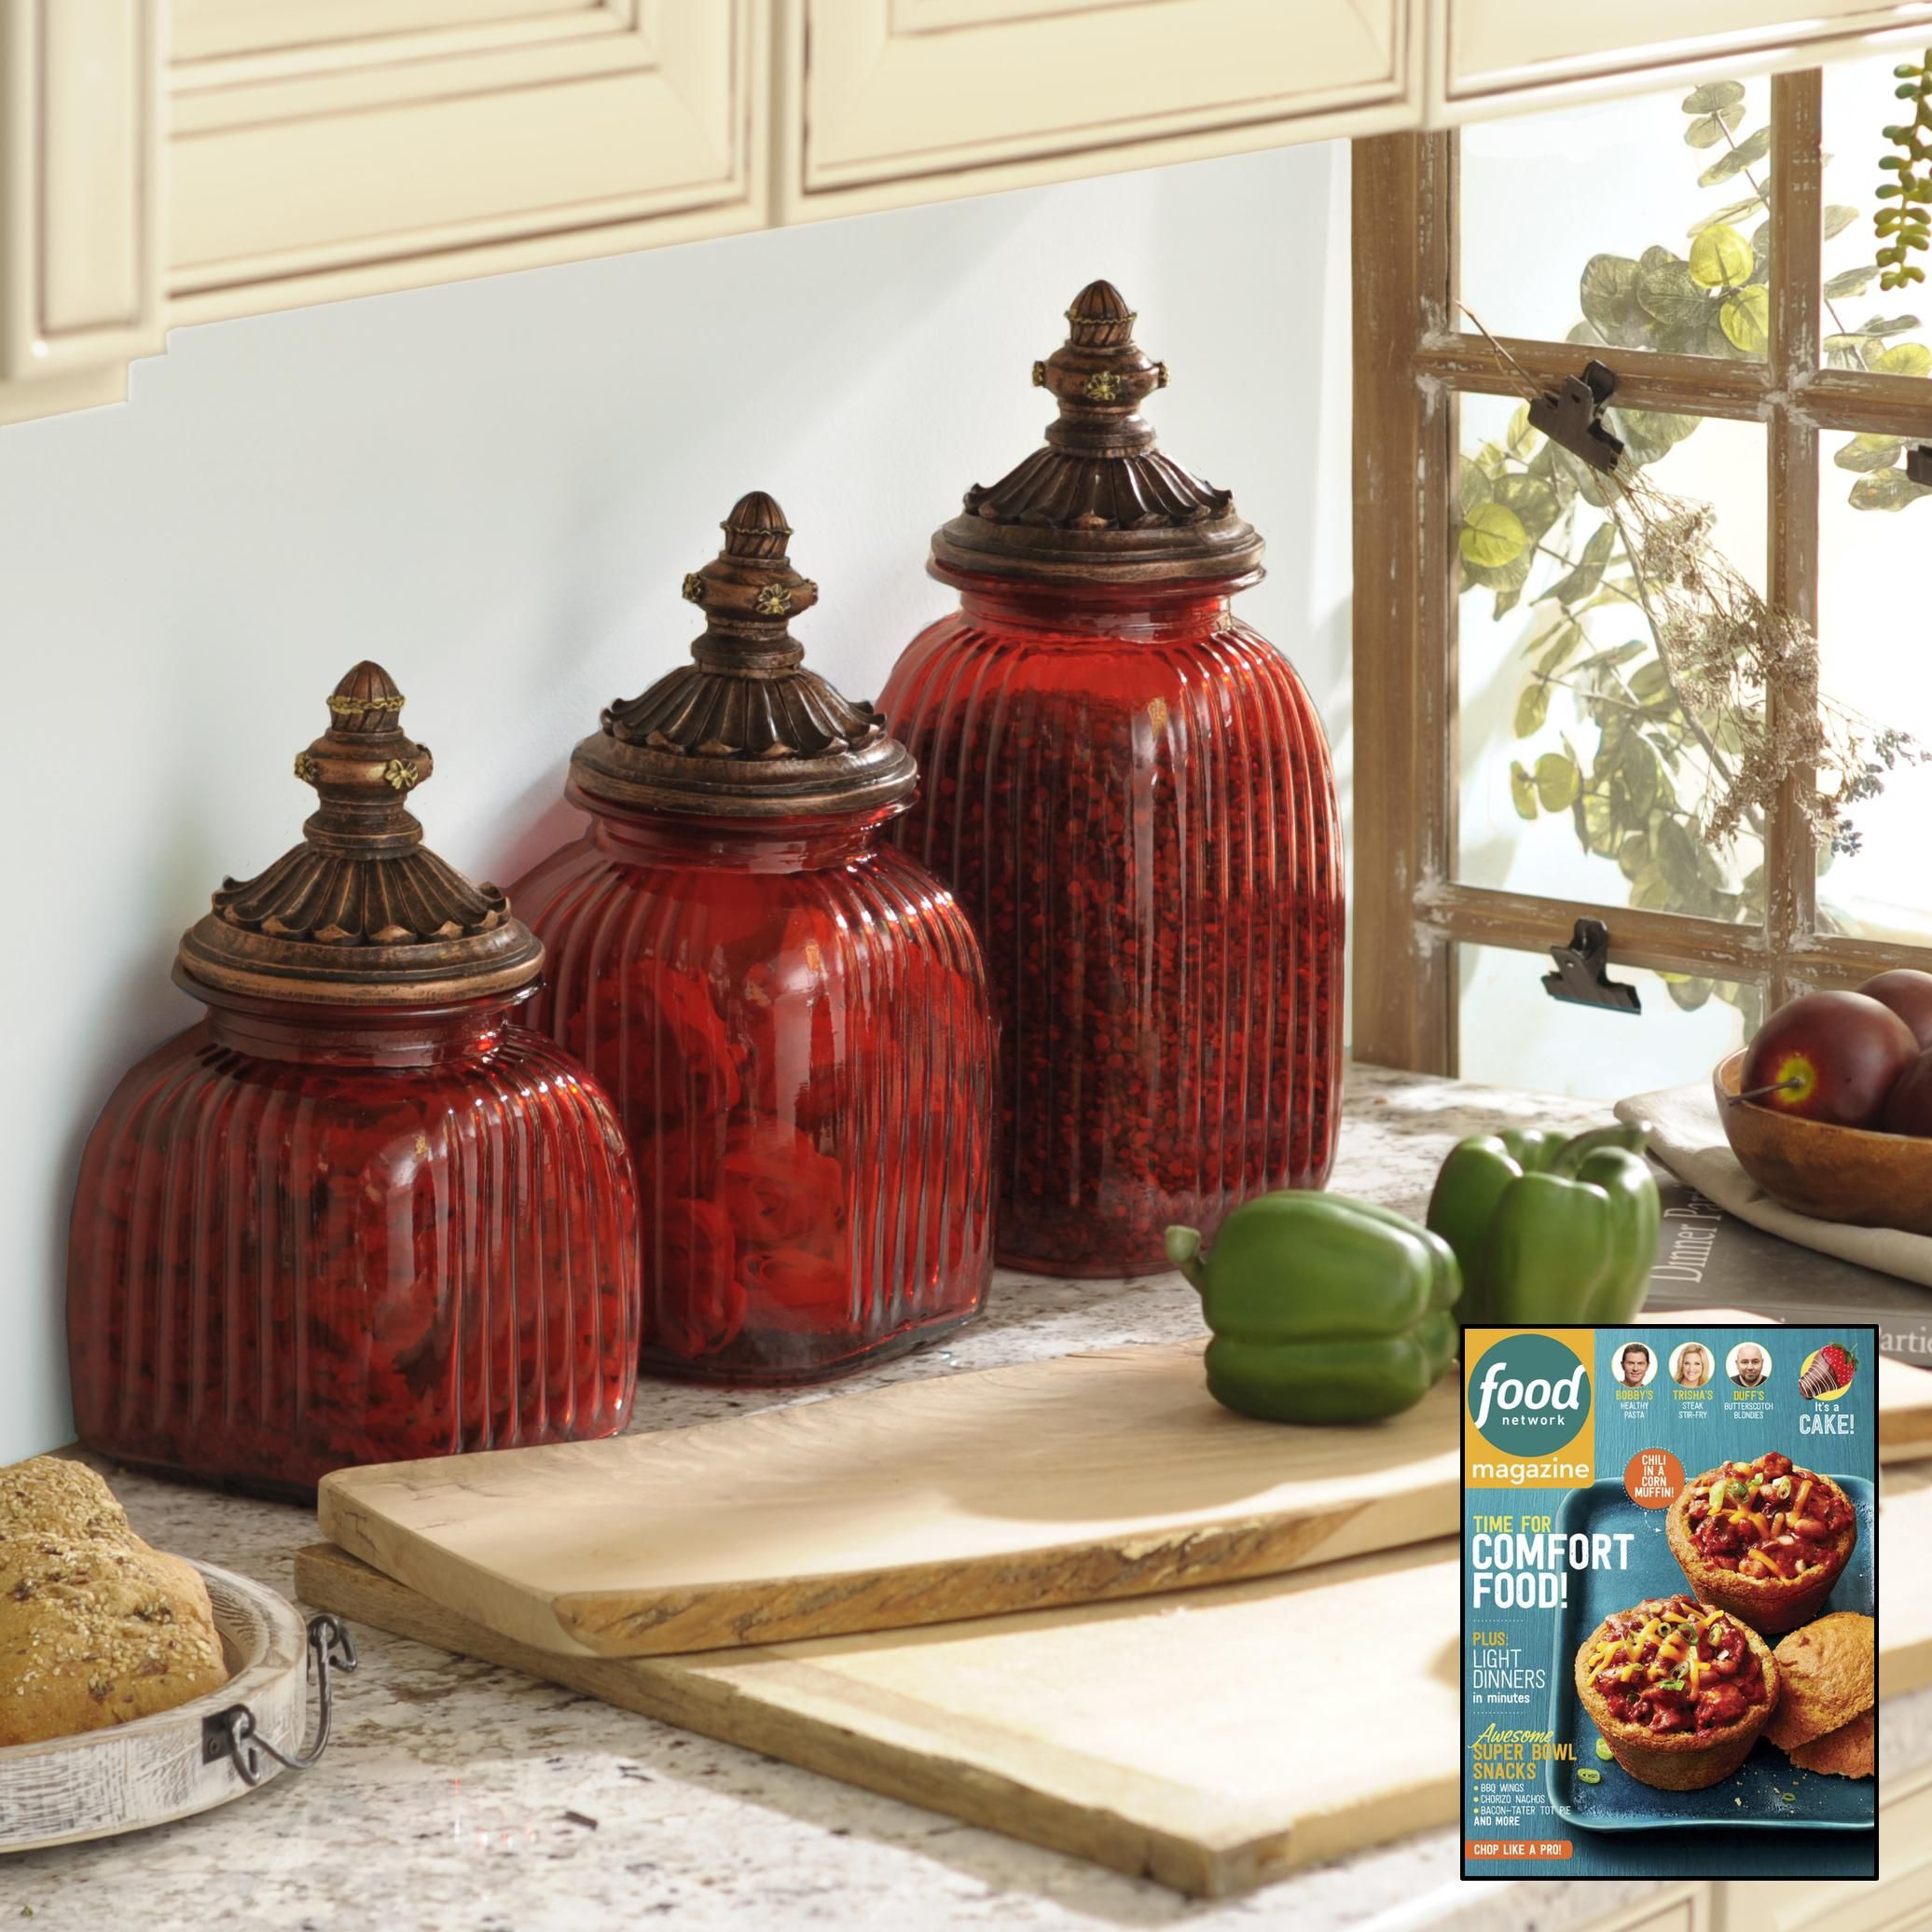 Quirky Kitchen Decor: Red Kitchen Decor Loved By Food Network Magazine